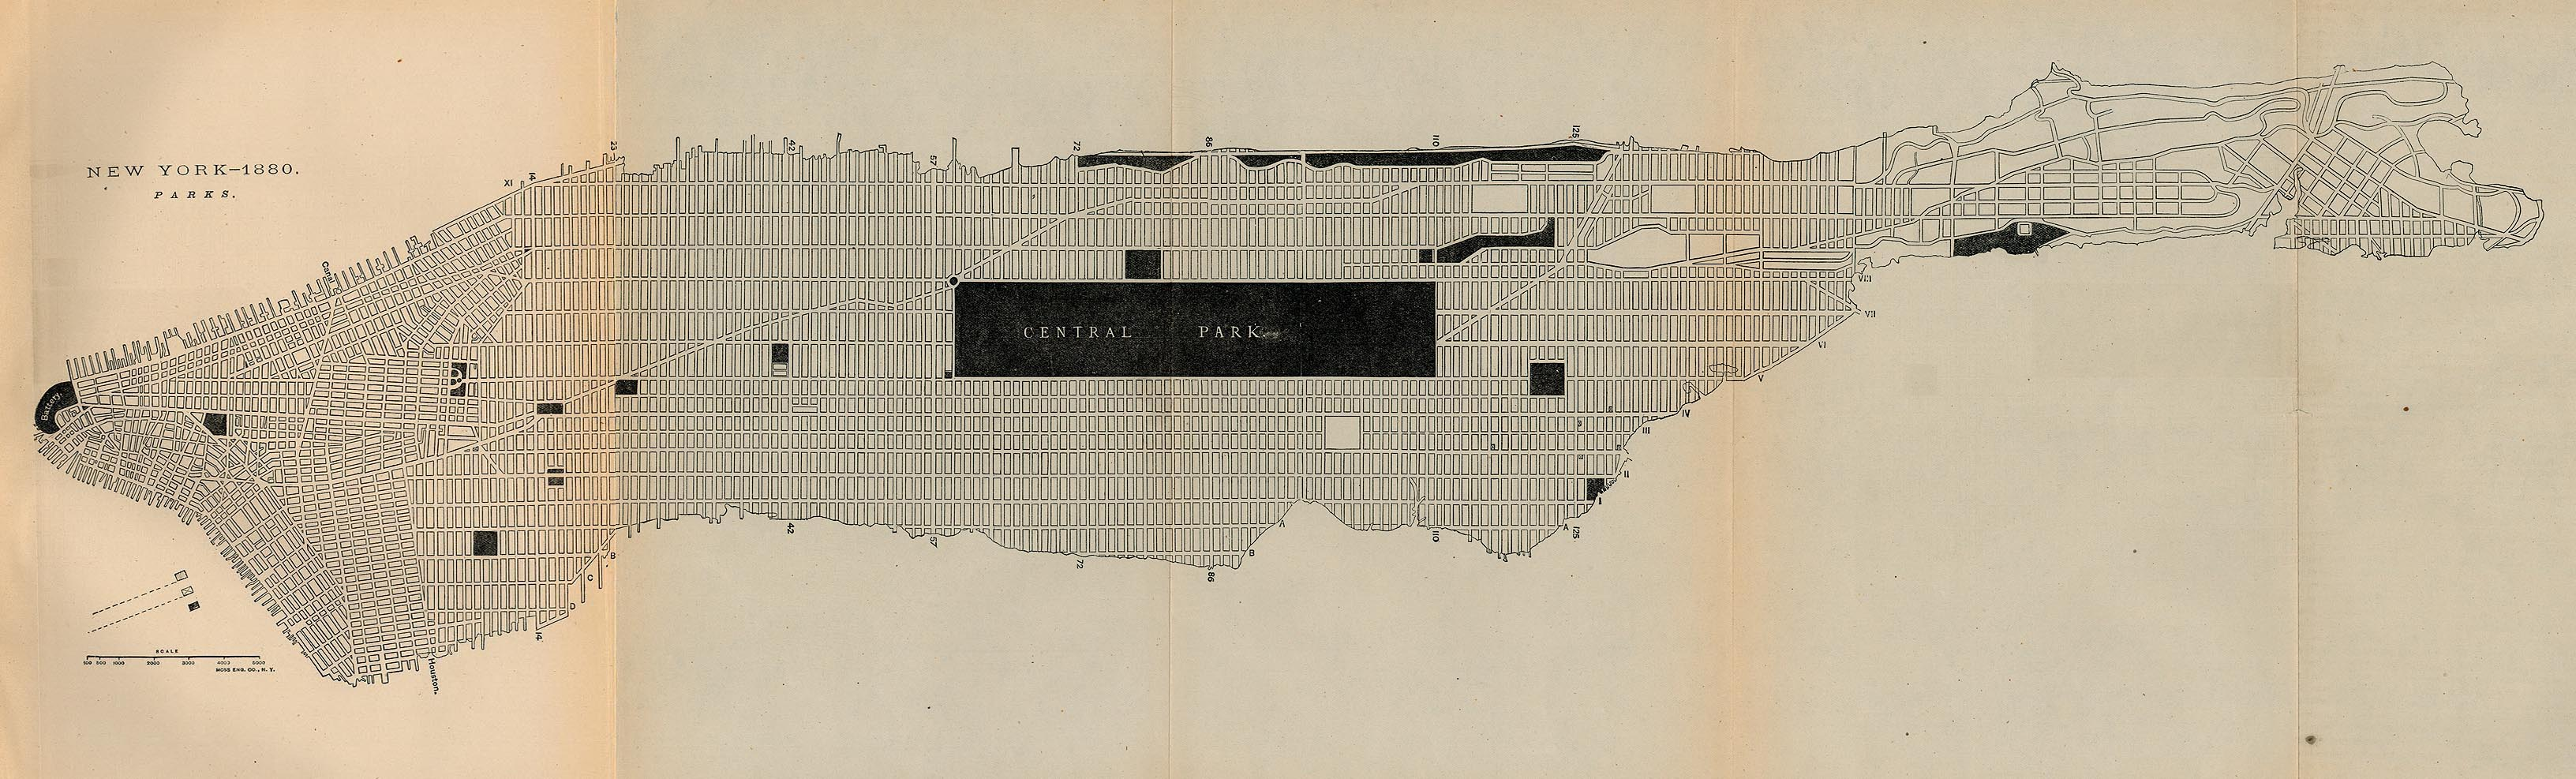 New York Maps PerryCastañeda Map Collection UT Library Online - Nyc map manhattan pdf